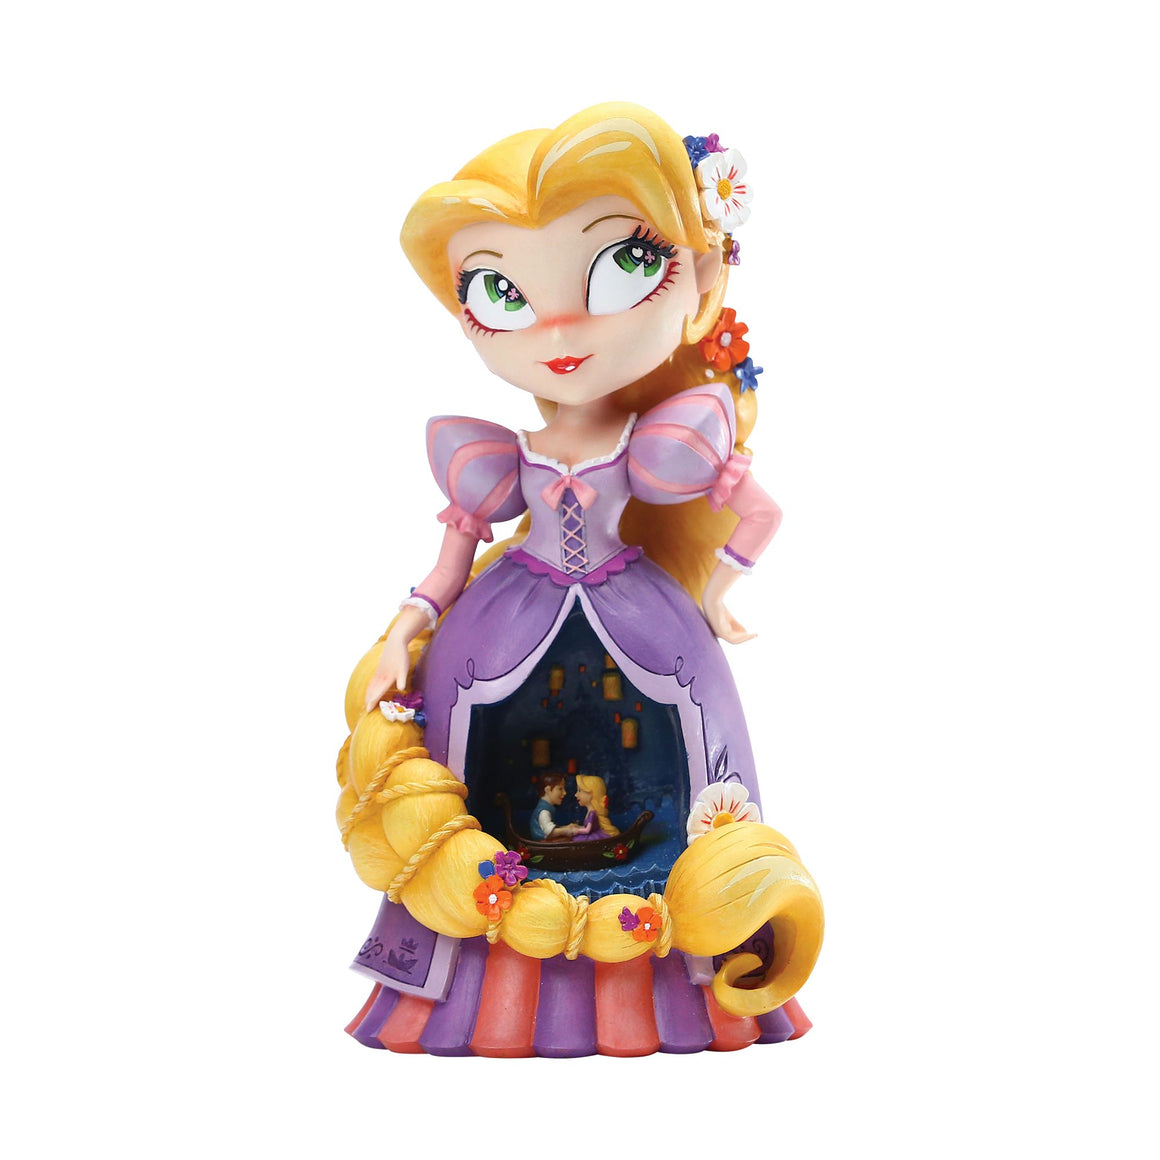 Rapunzel Figurine by Miss Mindy Presents Disney